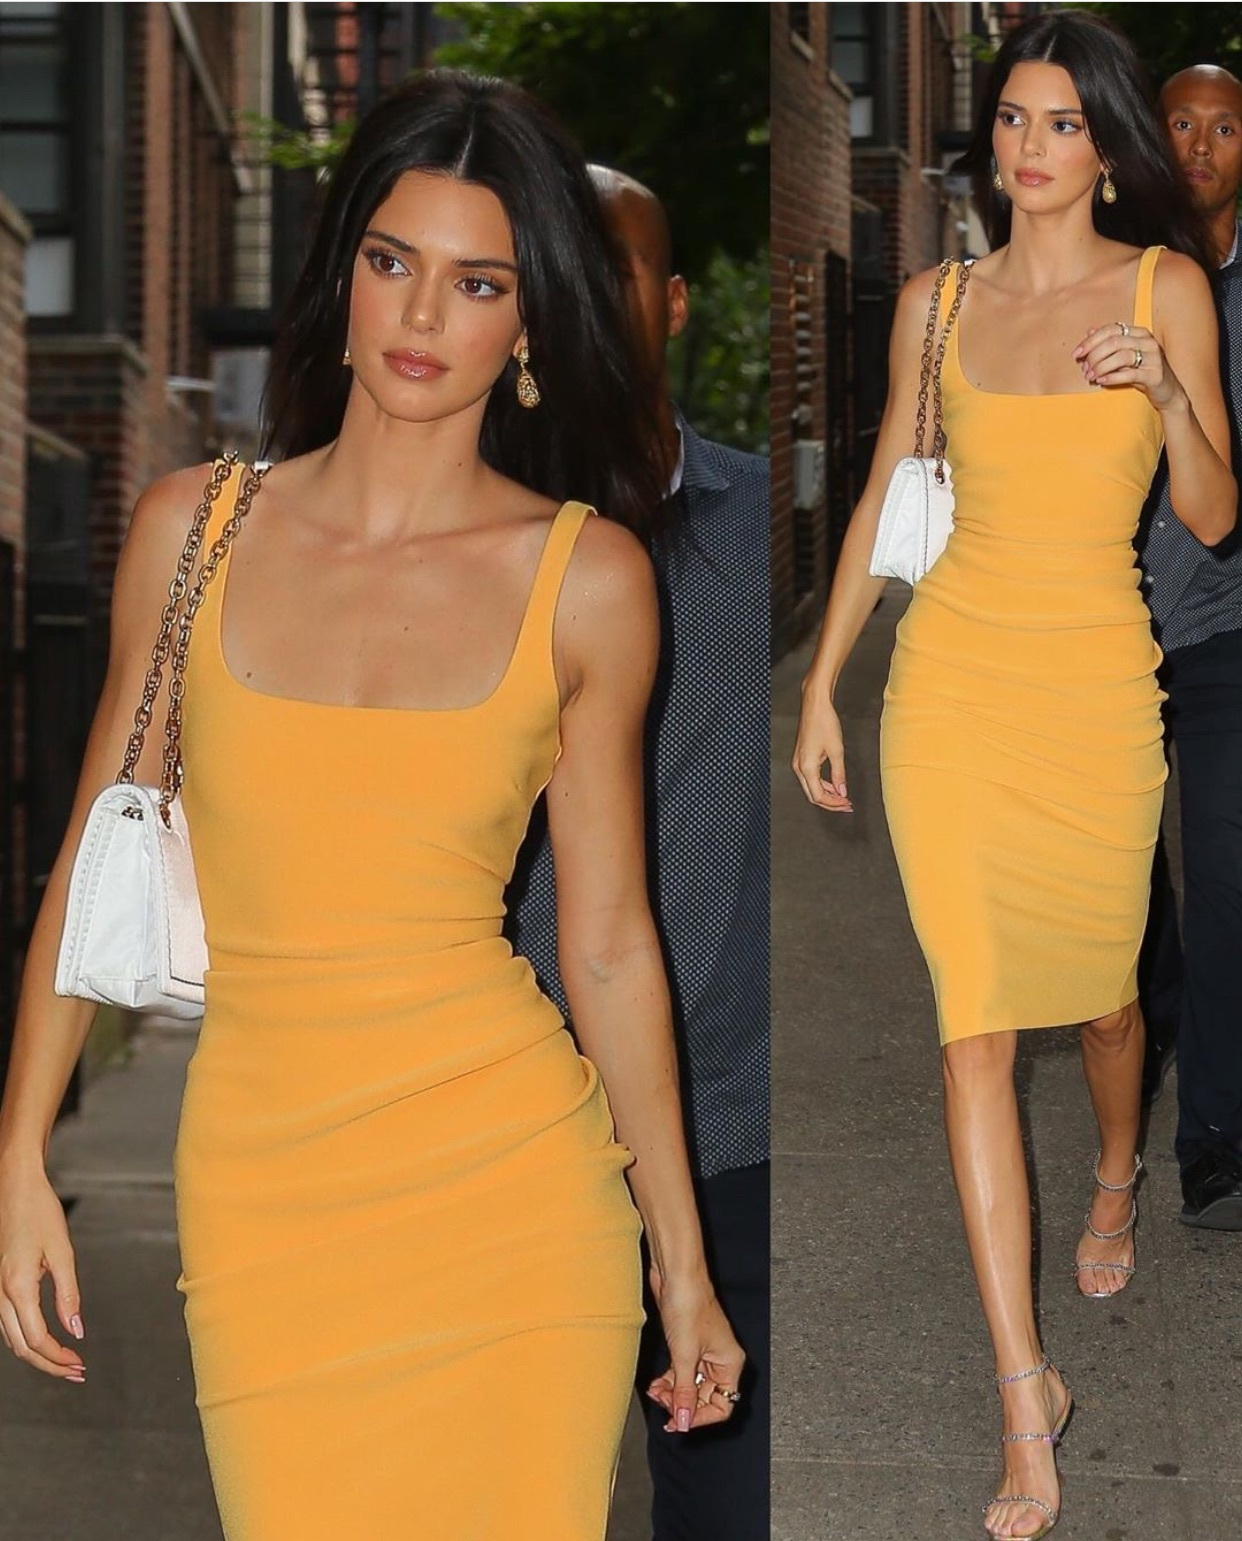 dress kendall and kylie jenner kendall jenner orange yellow dress yellow